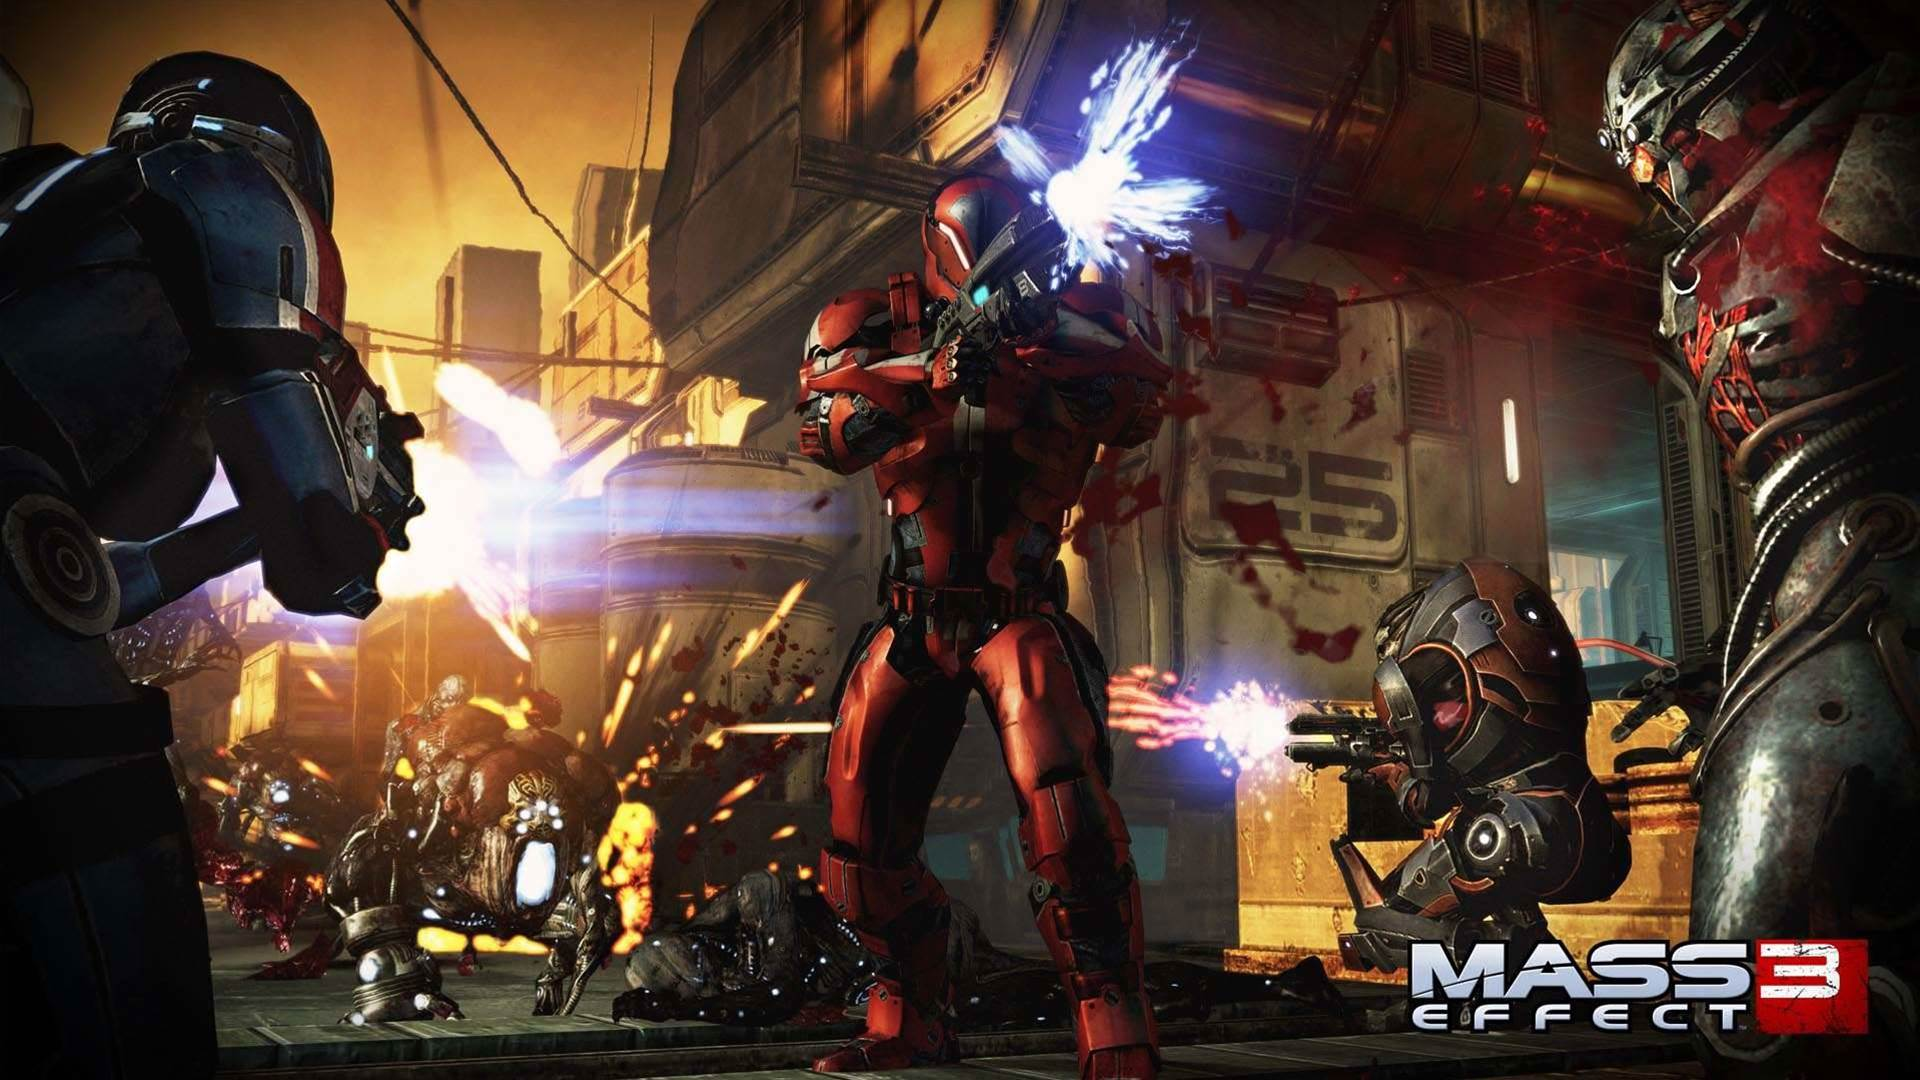 Mass Effect 3 Multiplayer - maybe we're getting excited now...